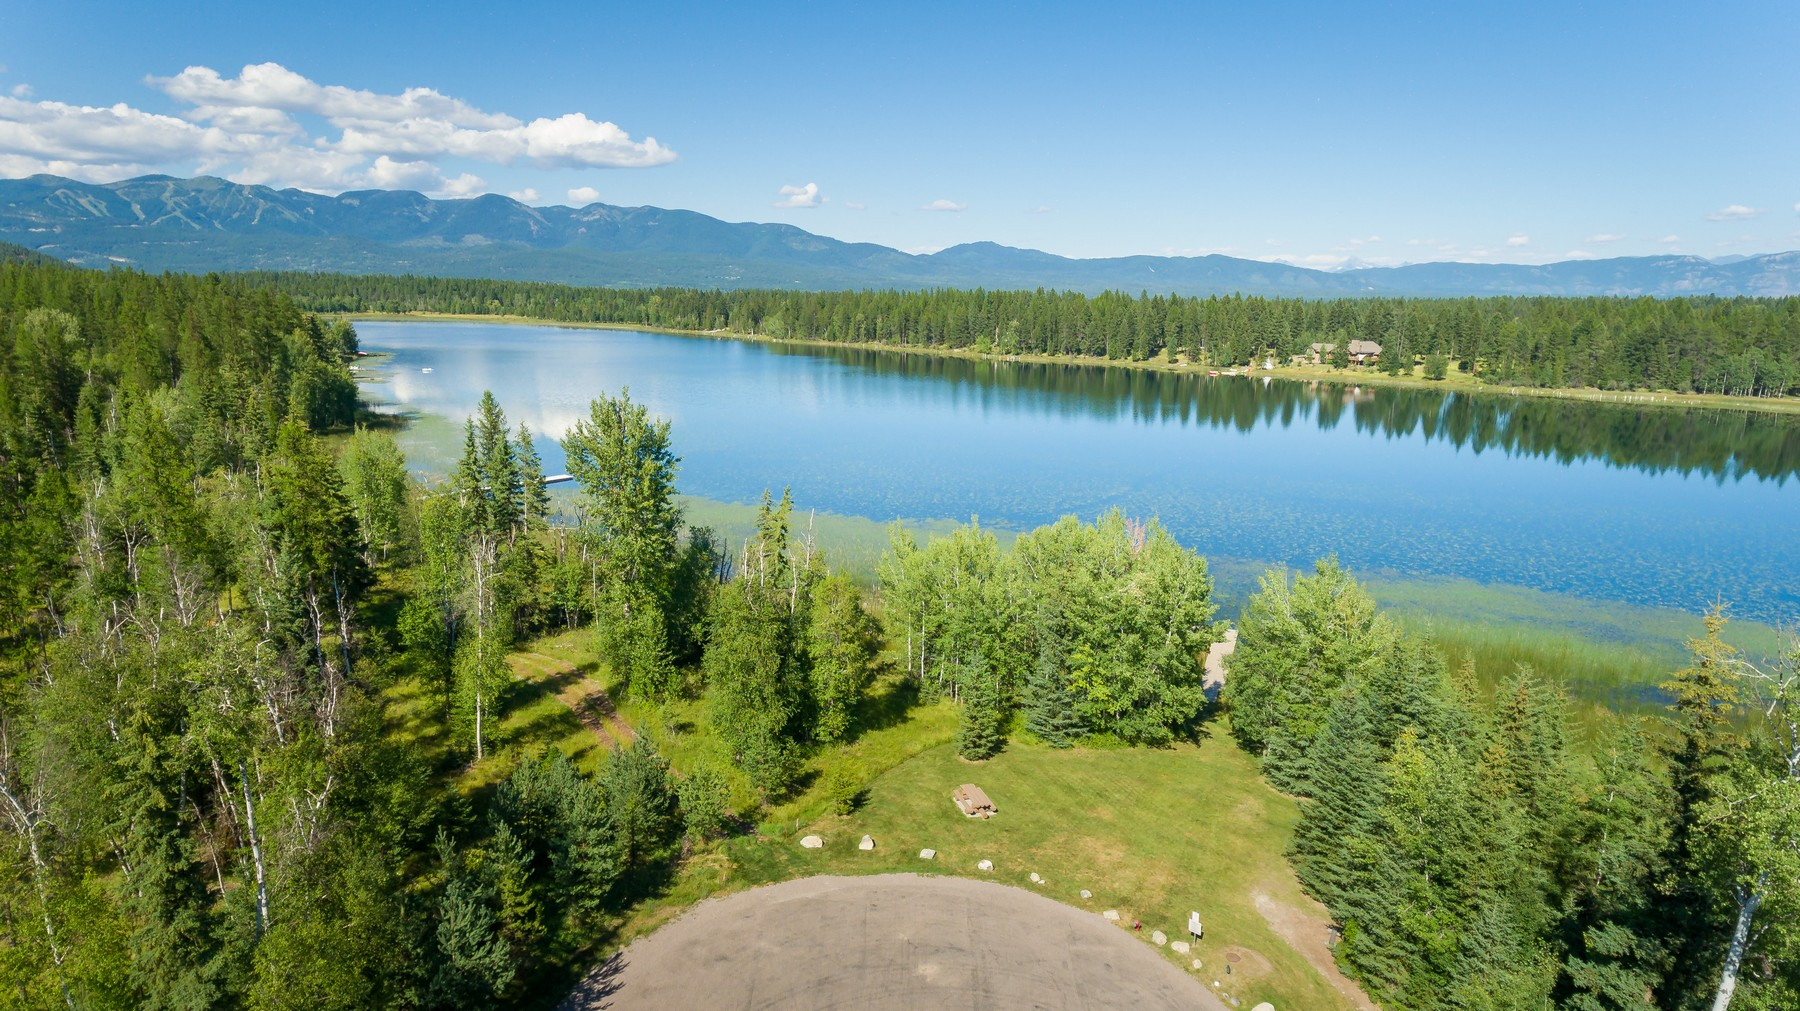 Additional photo for property listing at 1262 Spencer Ridge Rd , Whitefish, MT 59937 1262  Spencer Ridge Rd Whitefish, Montana 59937 United States